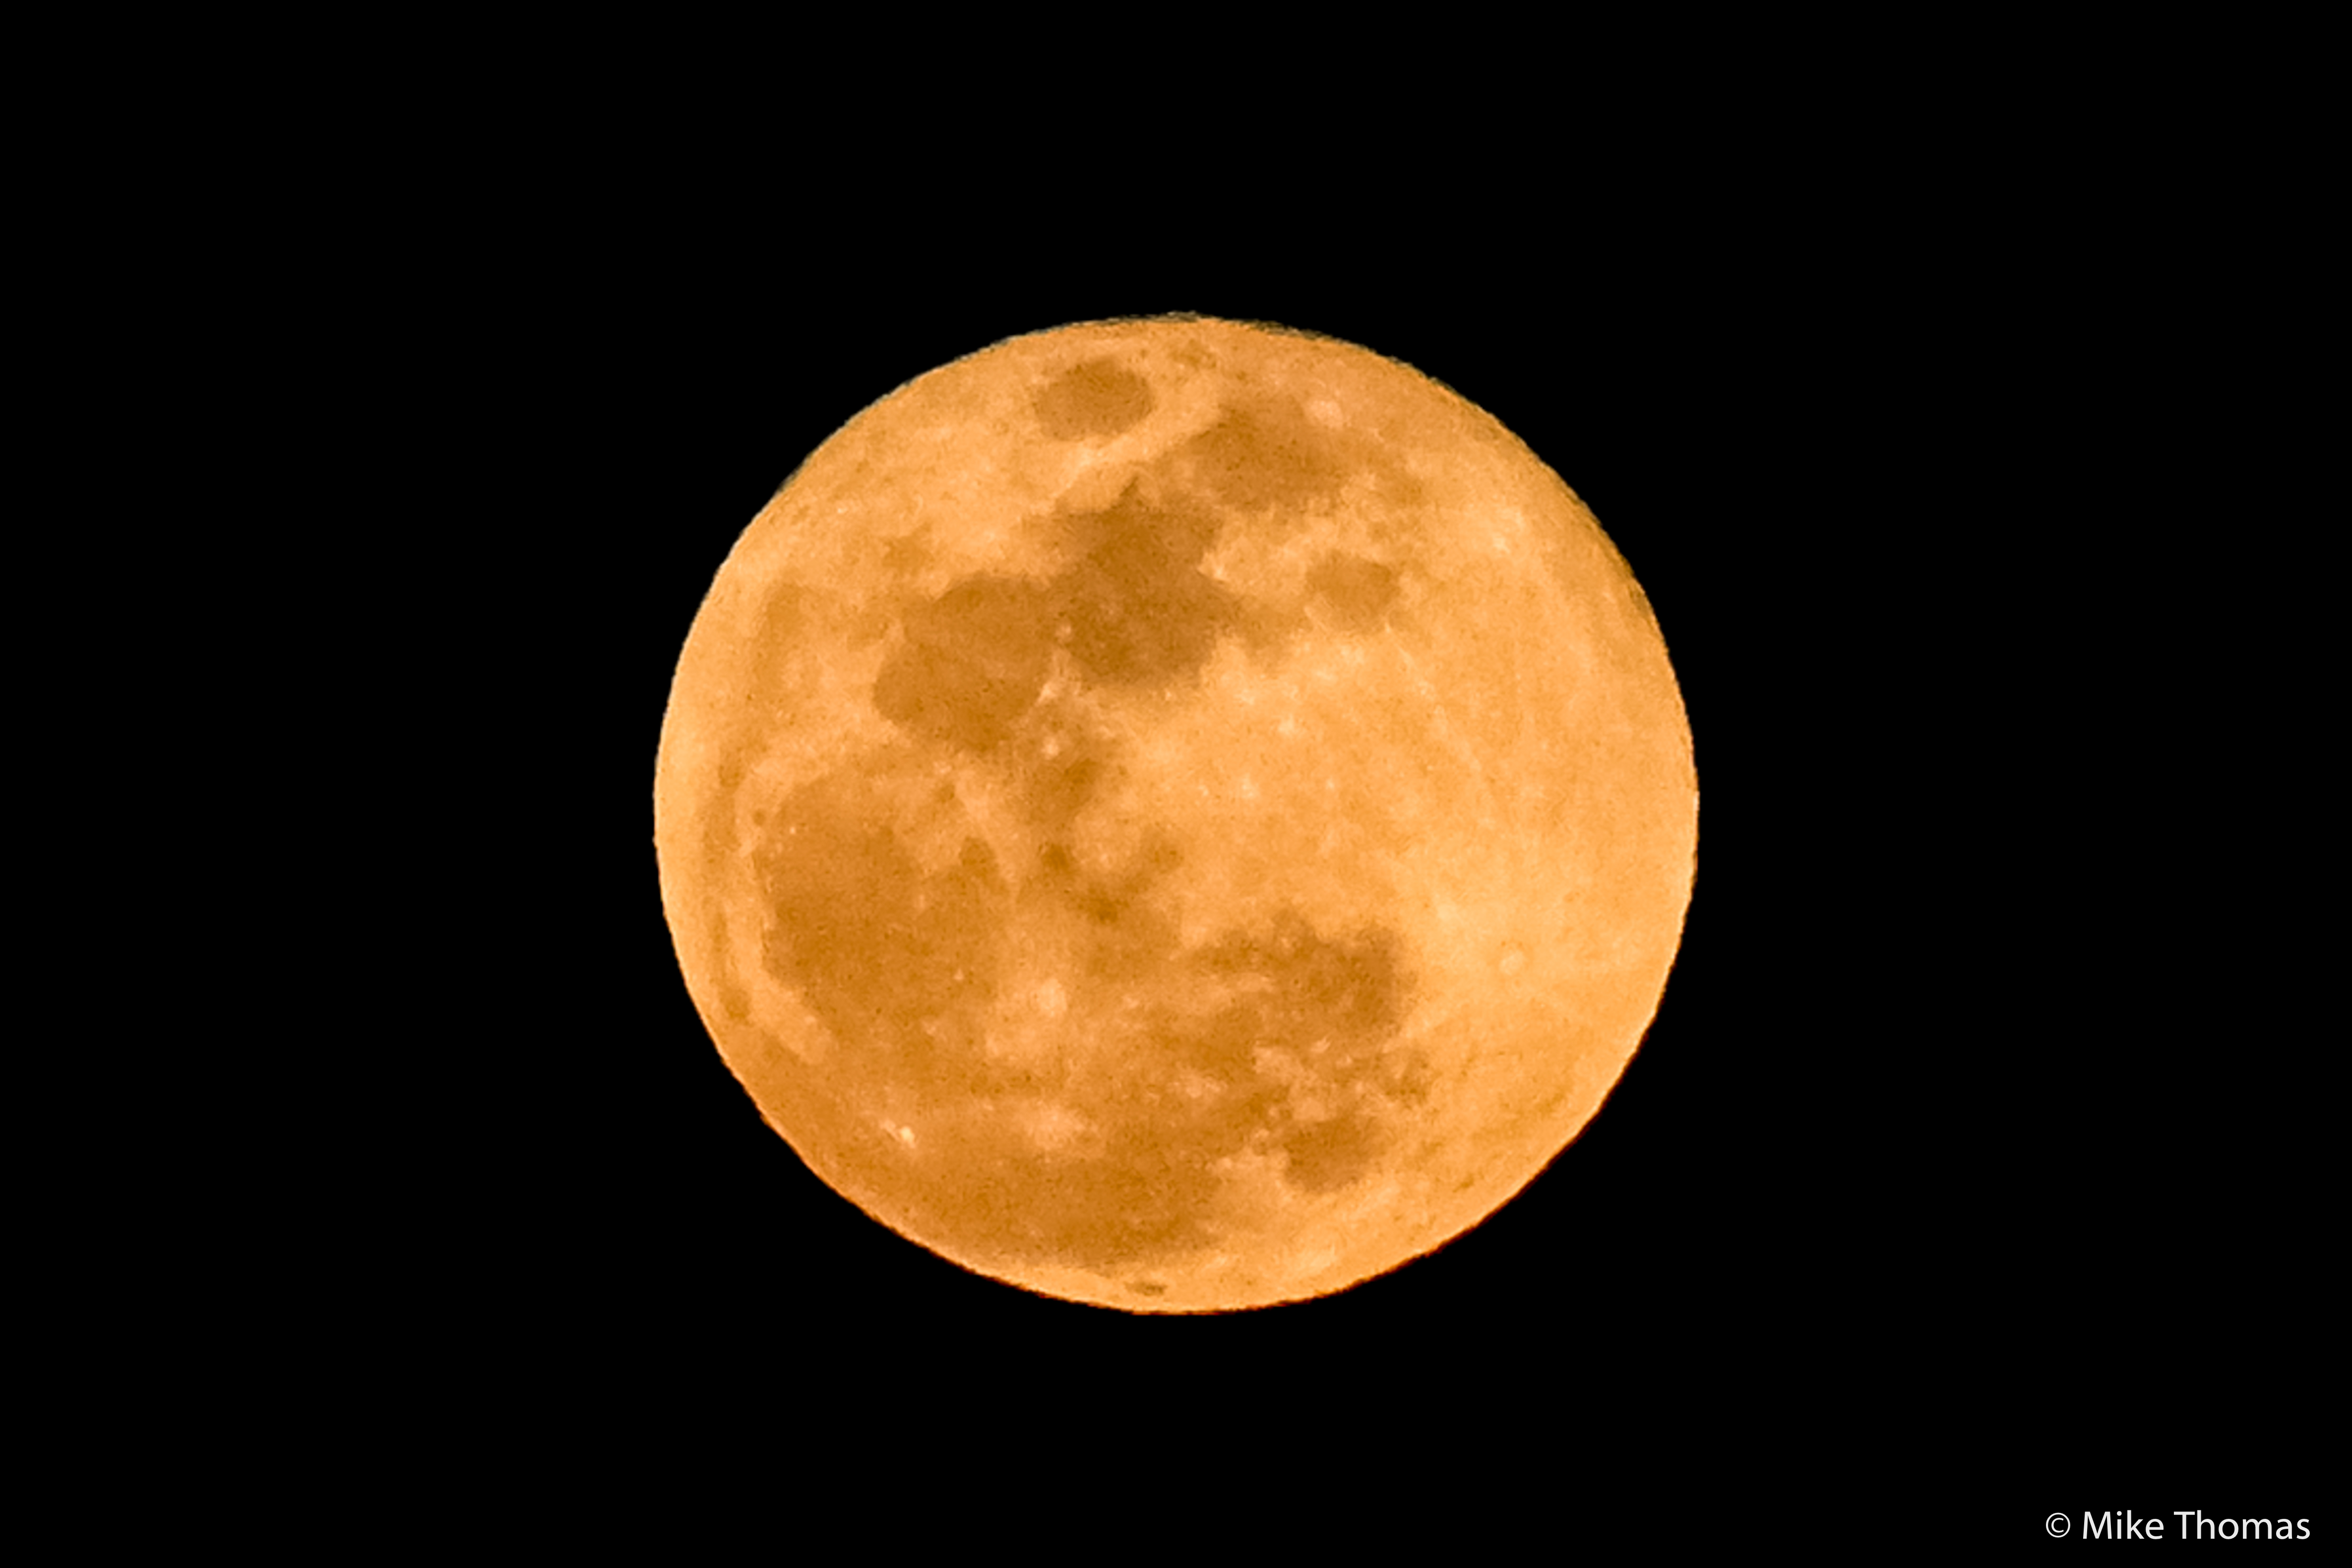 super moon, full moon, lunar, astro photography, space